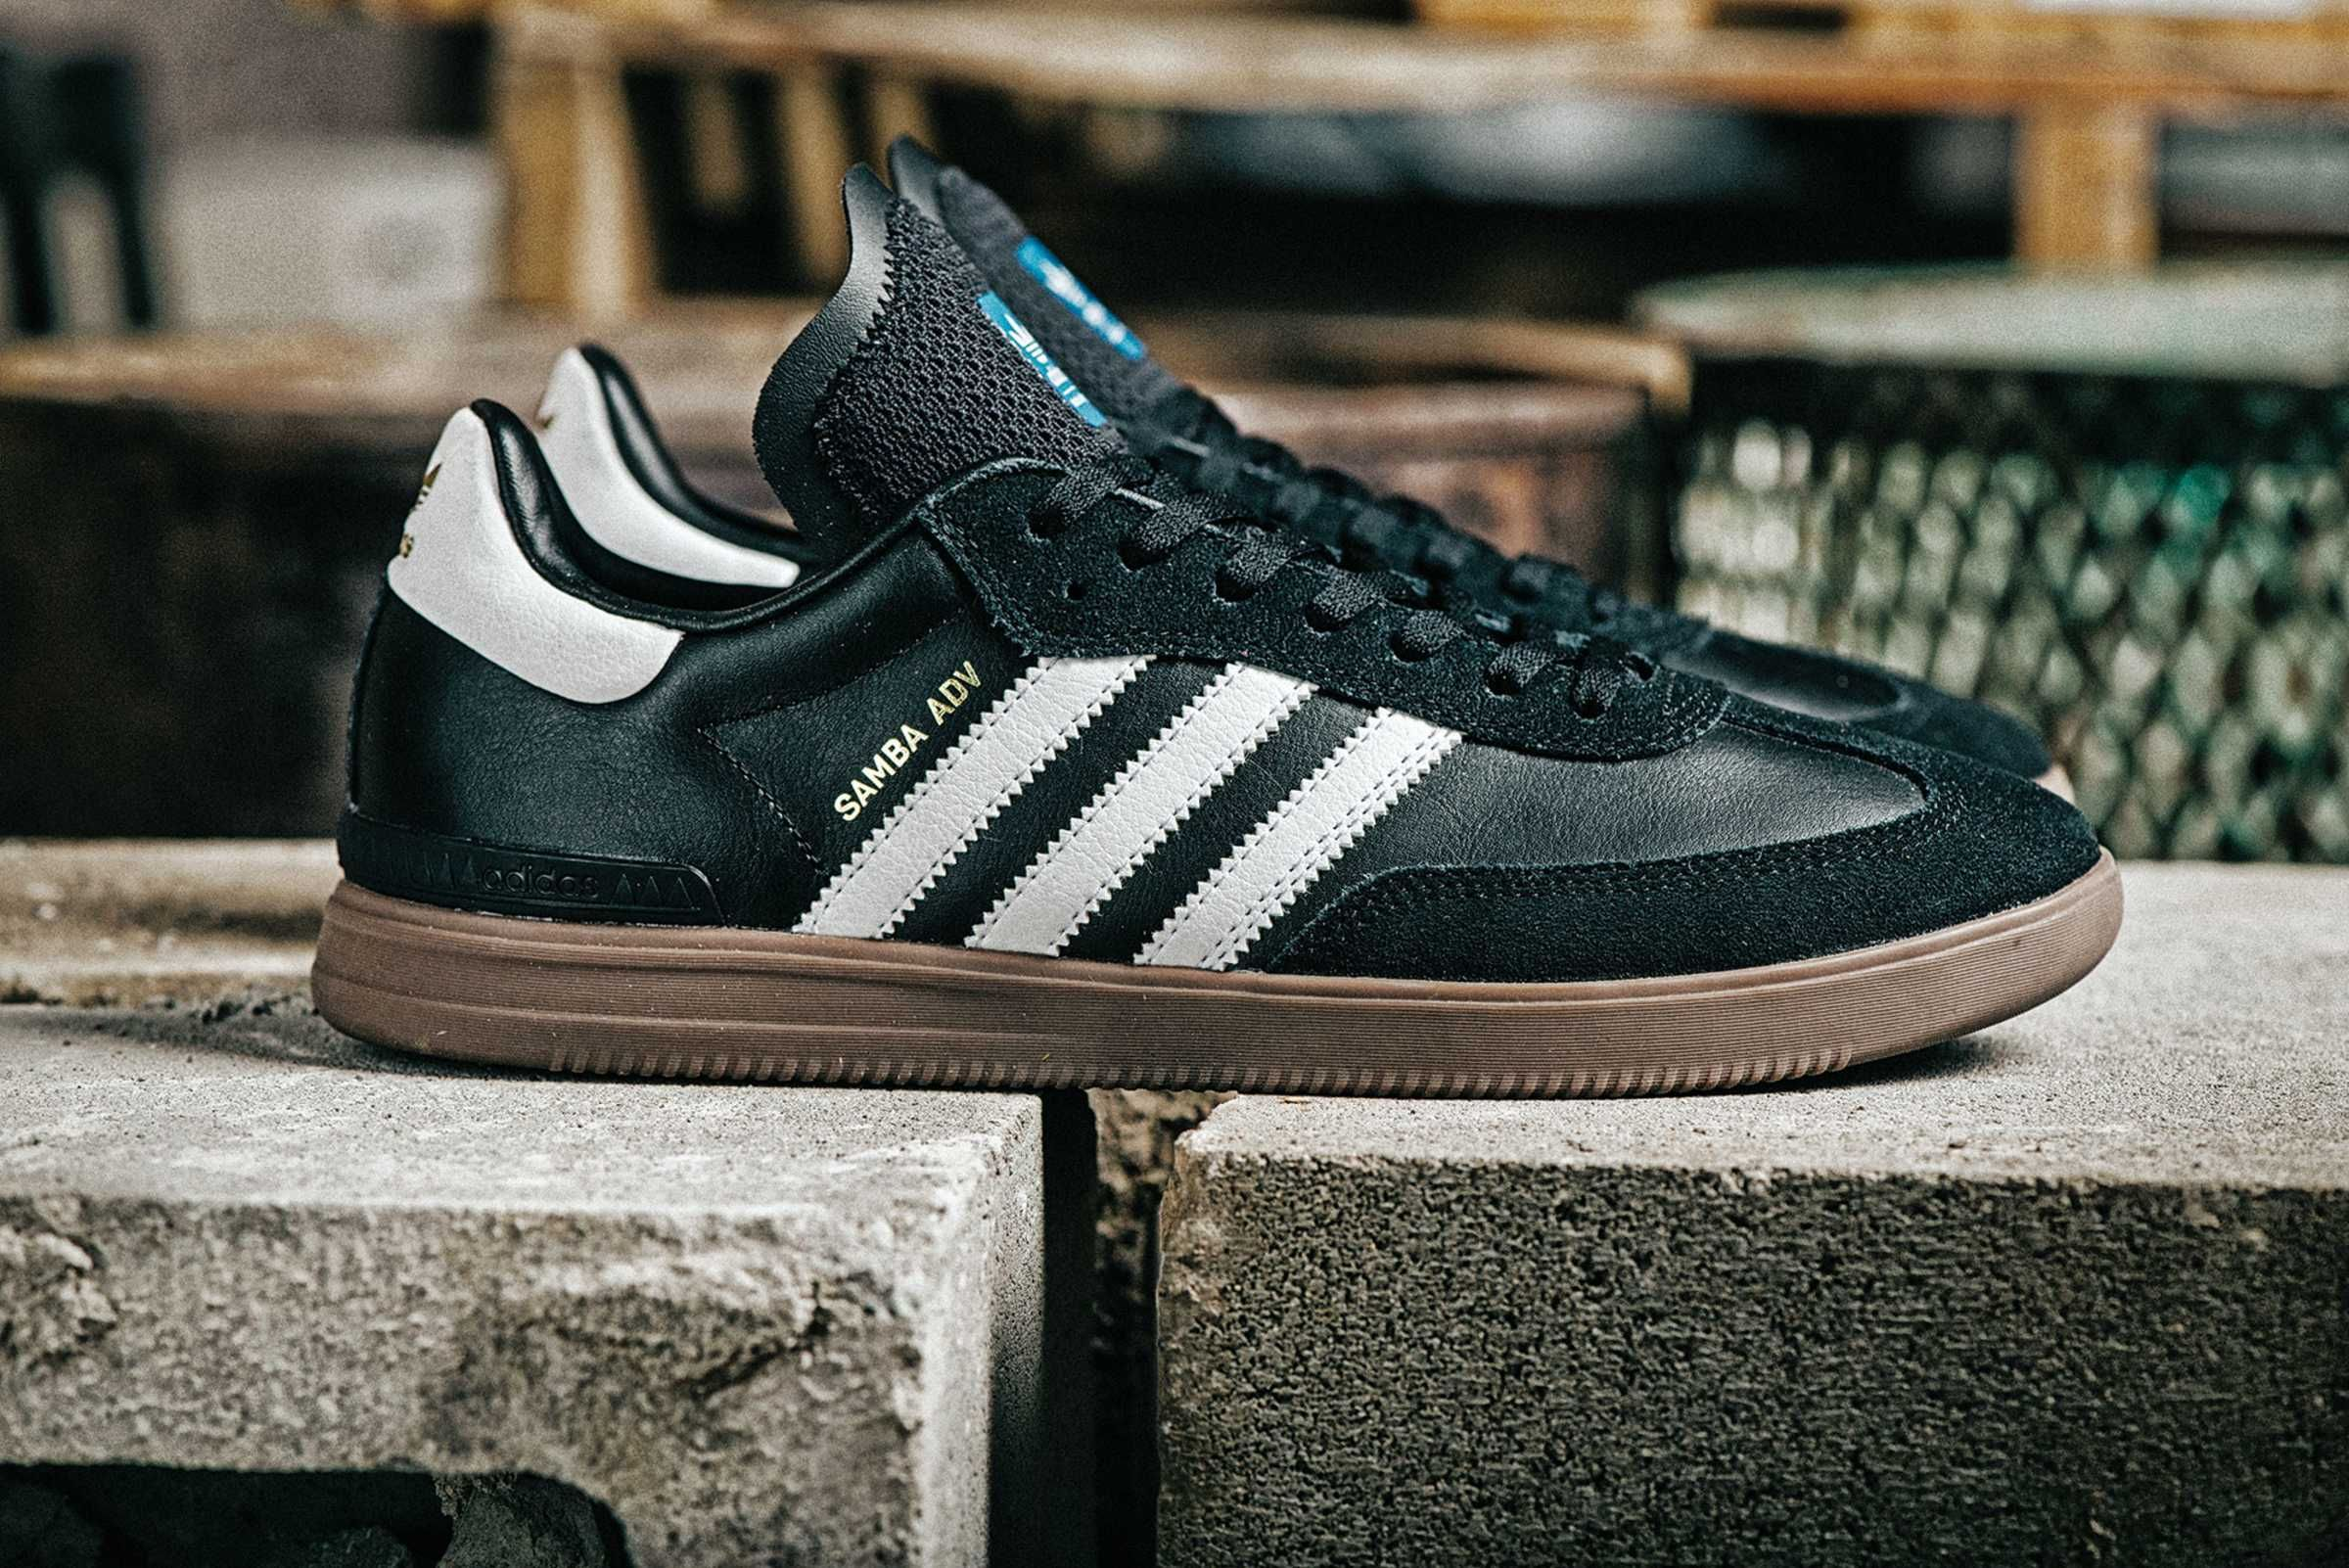 adidas Skateboarding Presents the Samba ADV | Adidas samba